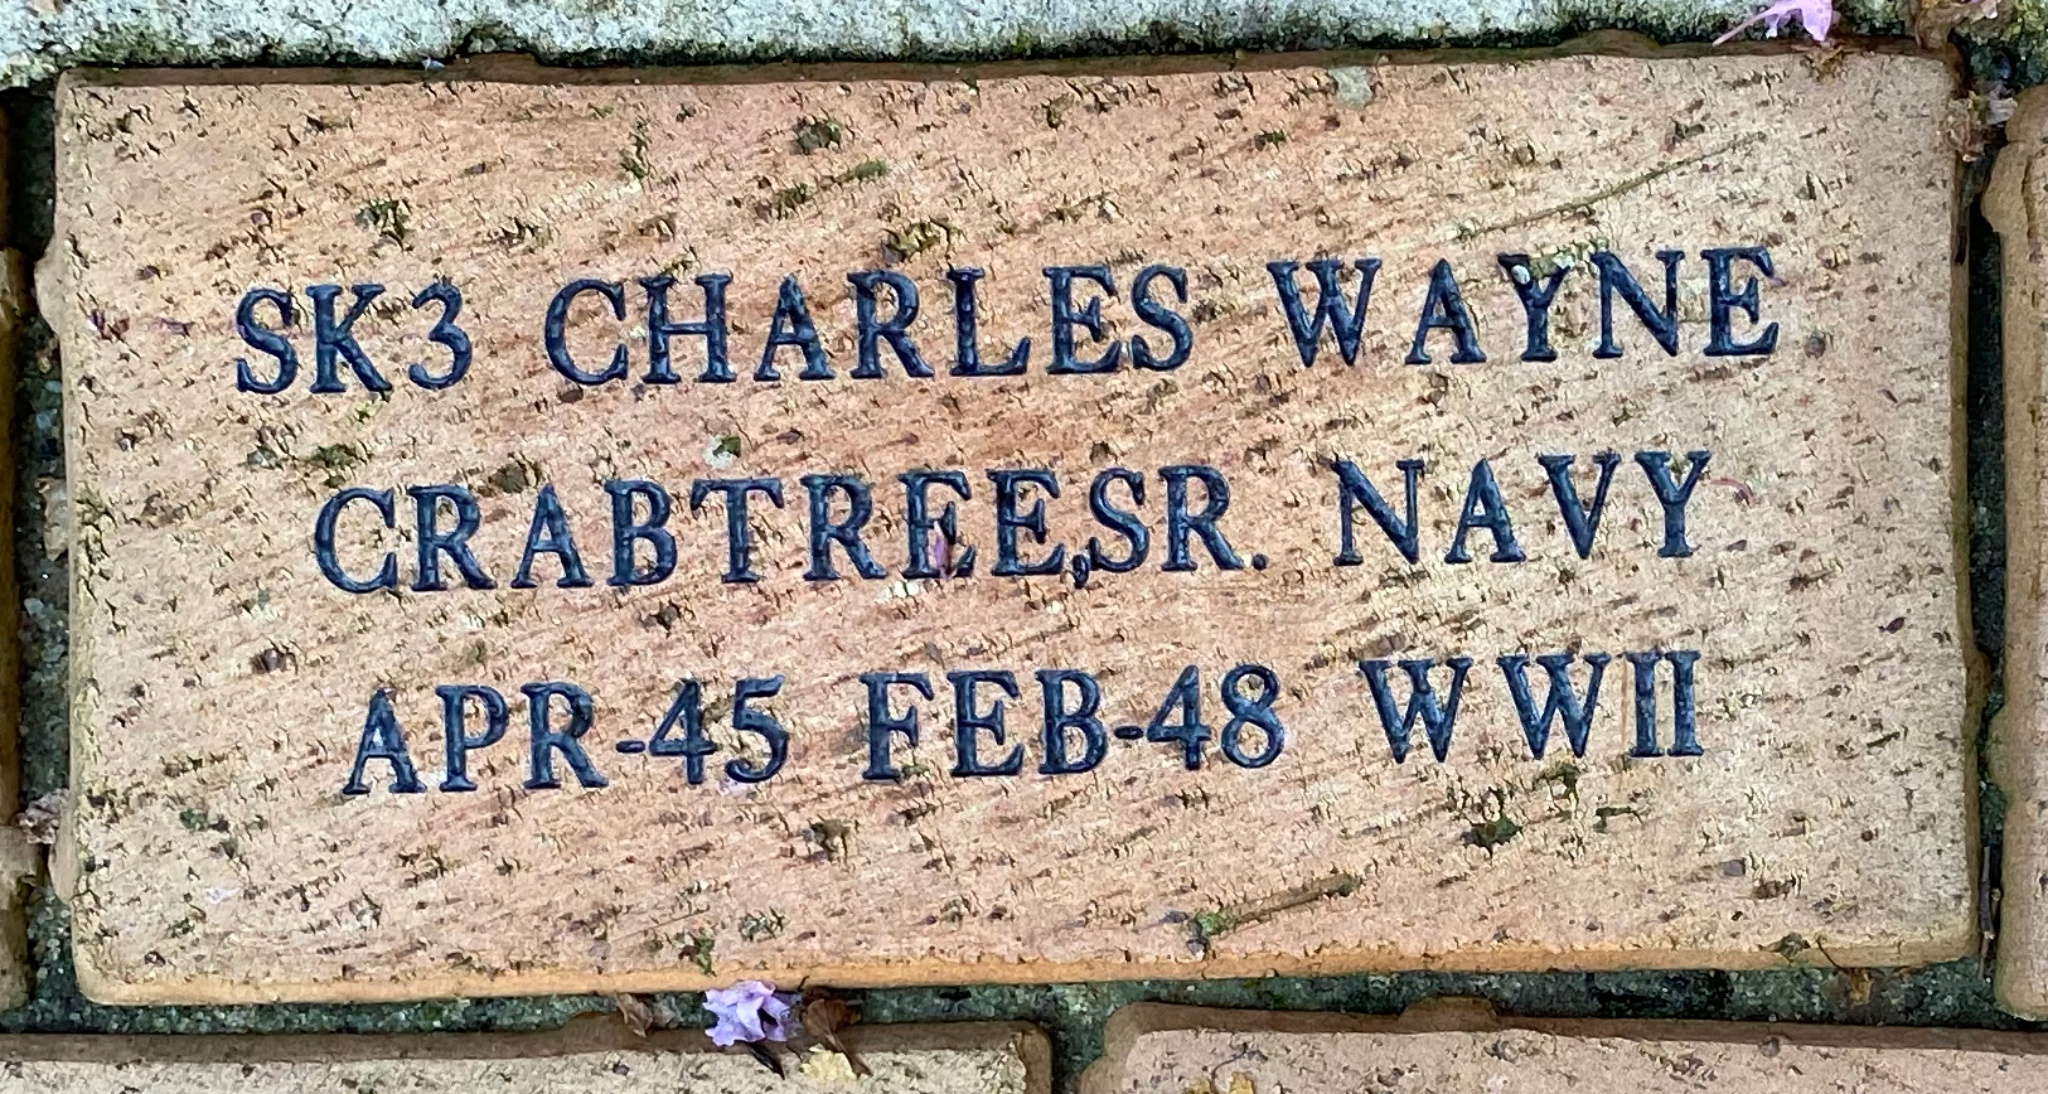 SK3 CHARLES WAYNE CRABTREE,SR. NAVY APR-45 FEB-48 WWII